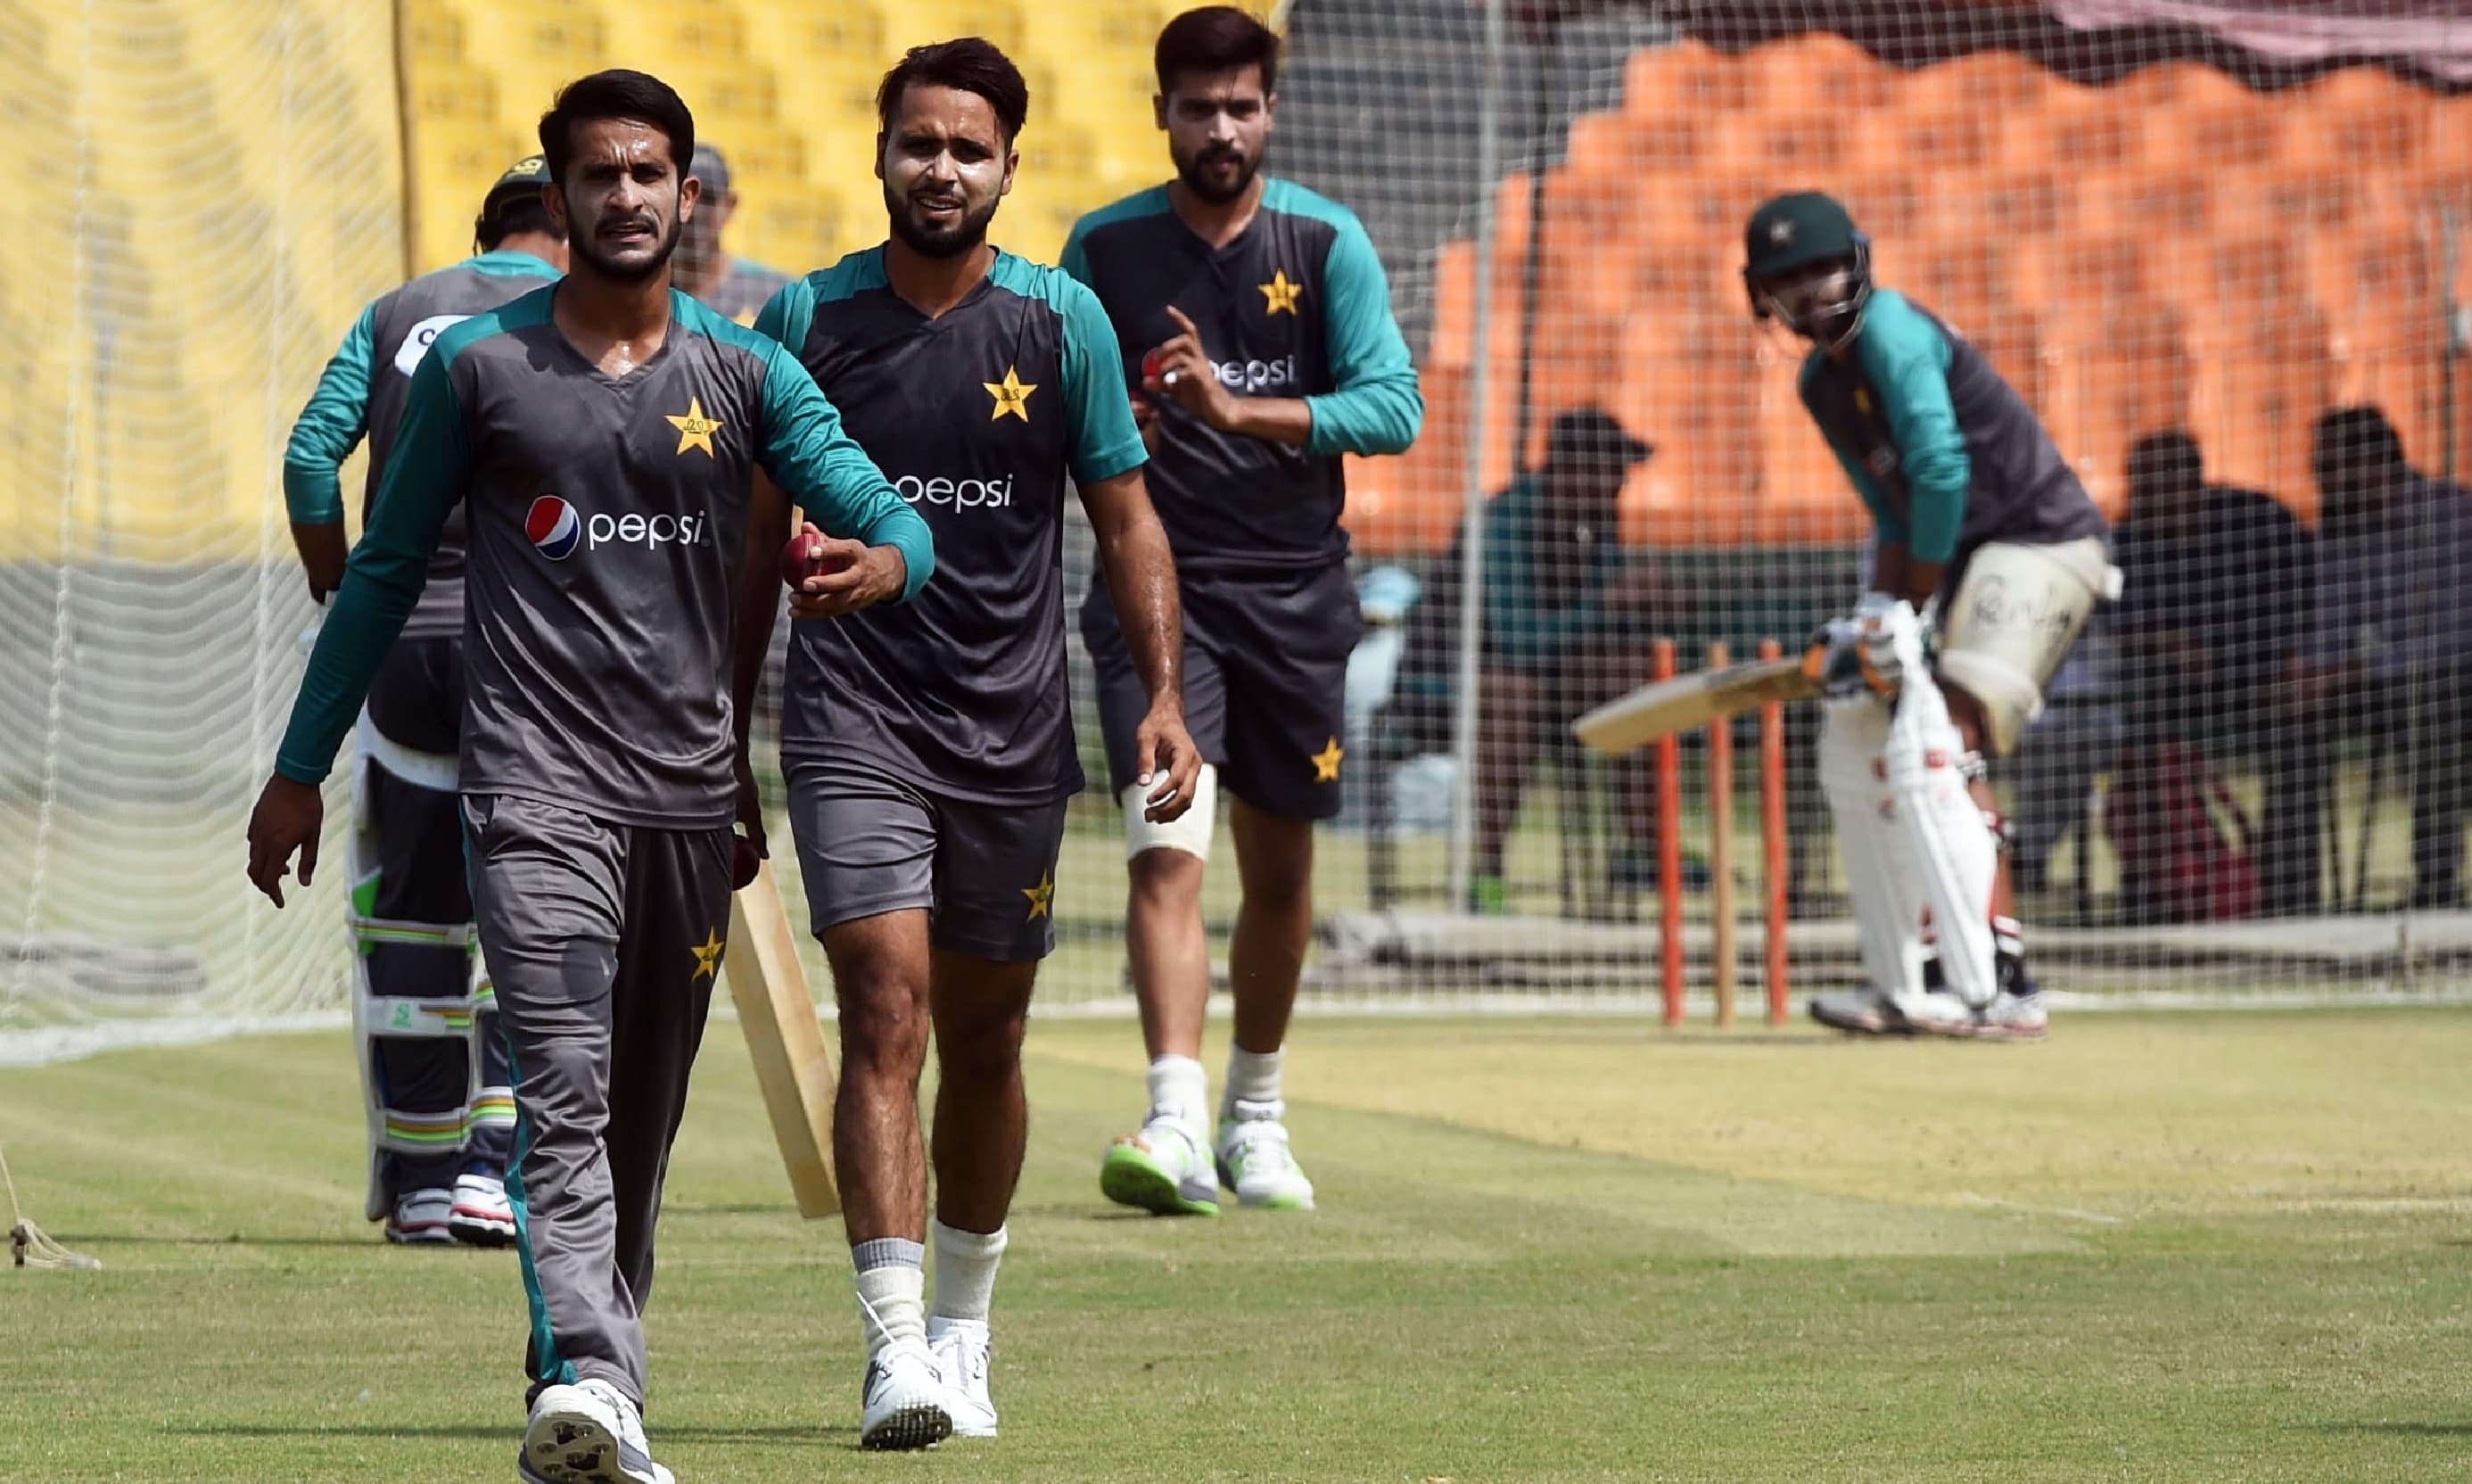 Mohammad Amir, Hassan Ali and Faheem Ashraf walk after delivering a ball during a practice session in Lahore. —AFP